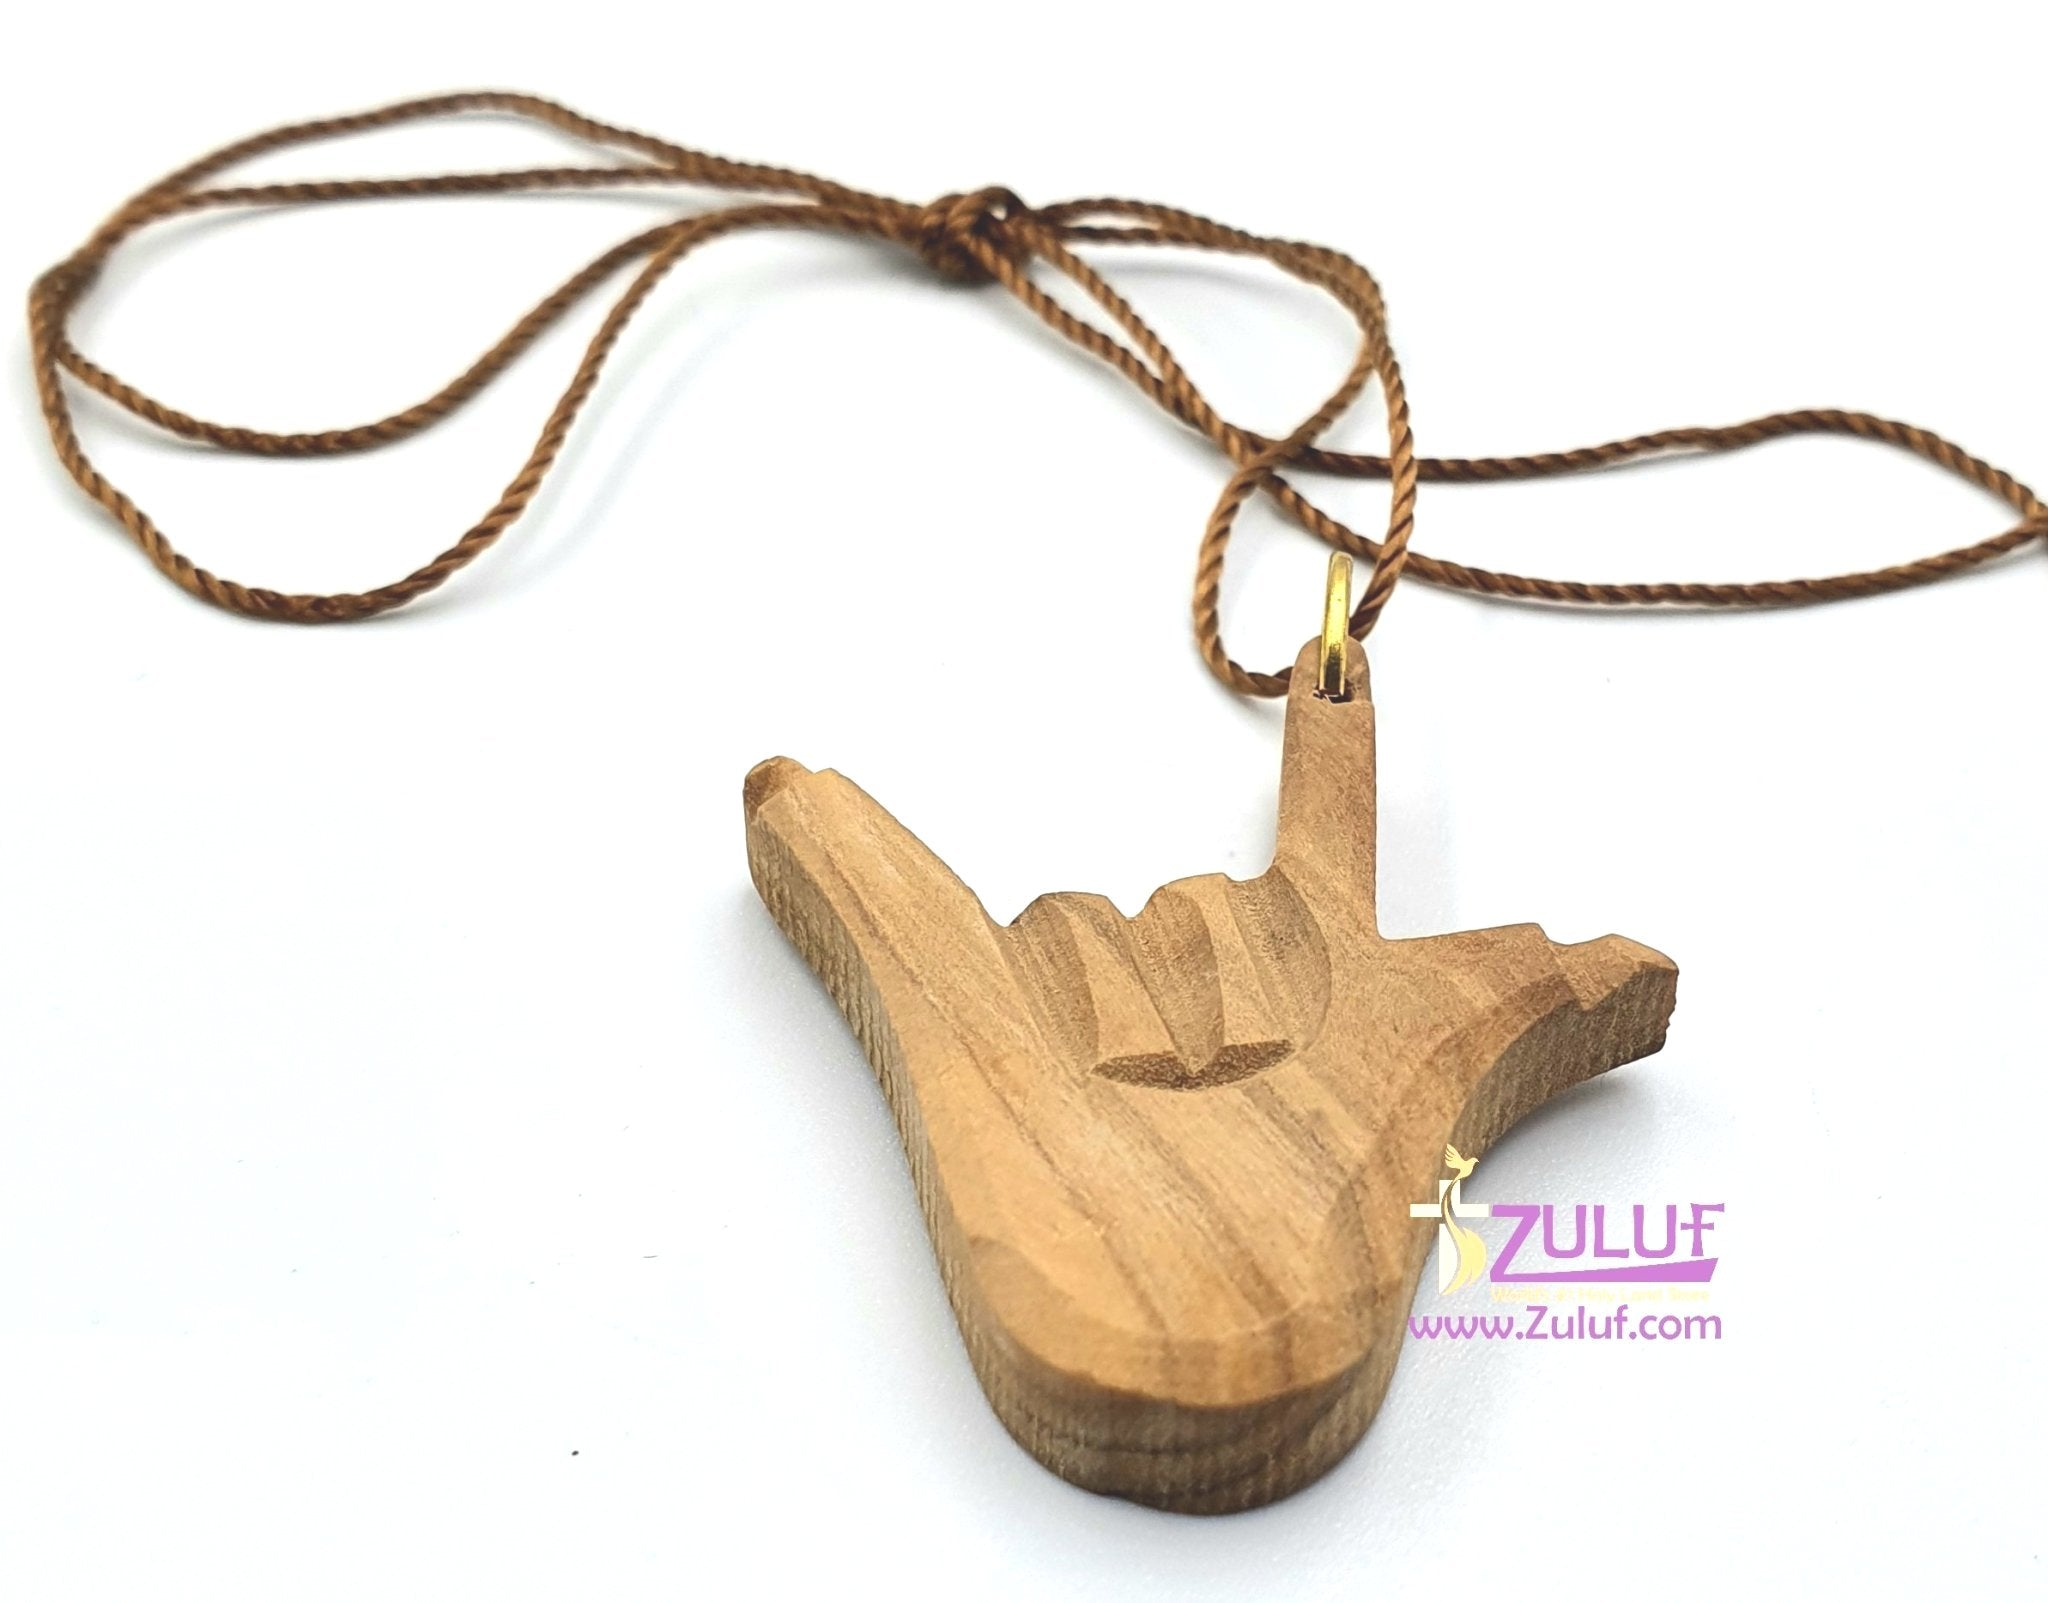 Zuluf Love hand Pendant Carved Olive Wood - PEN111 - Zuluf